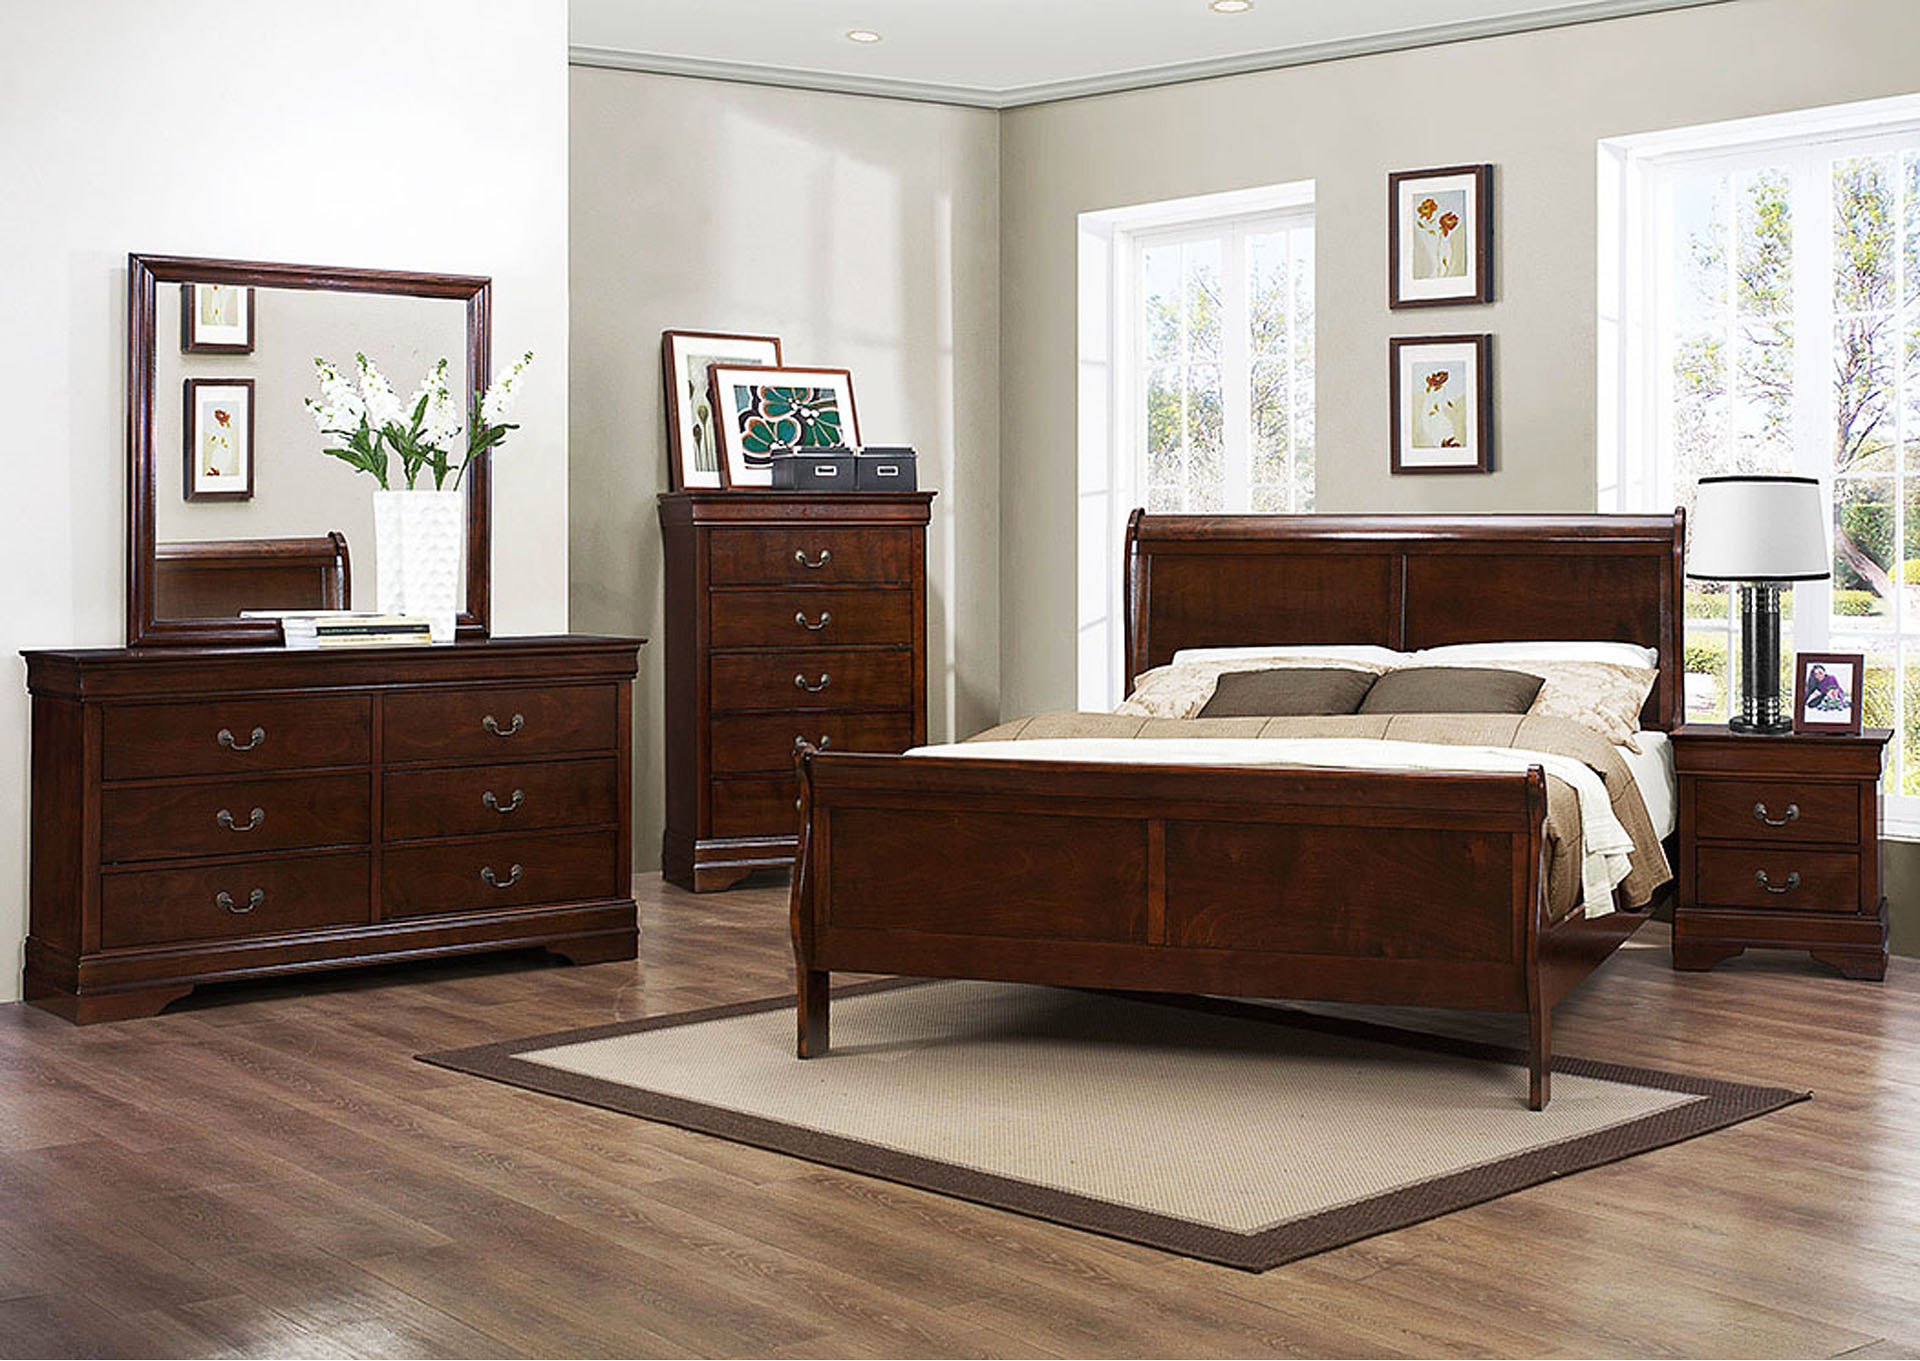 Mayville Burnish Brown Cherry Dresser w/Mirror,Homelegance